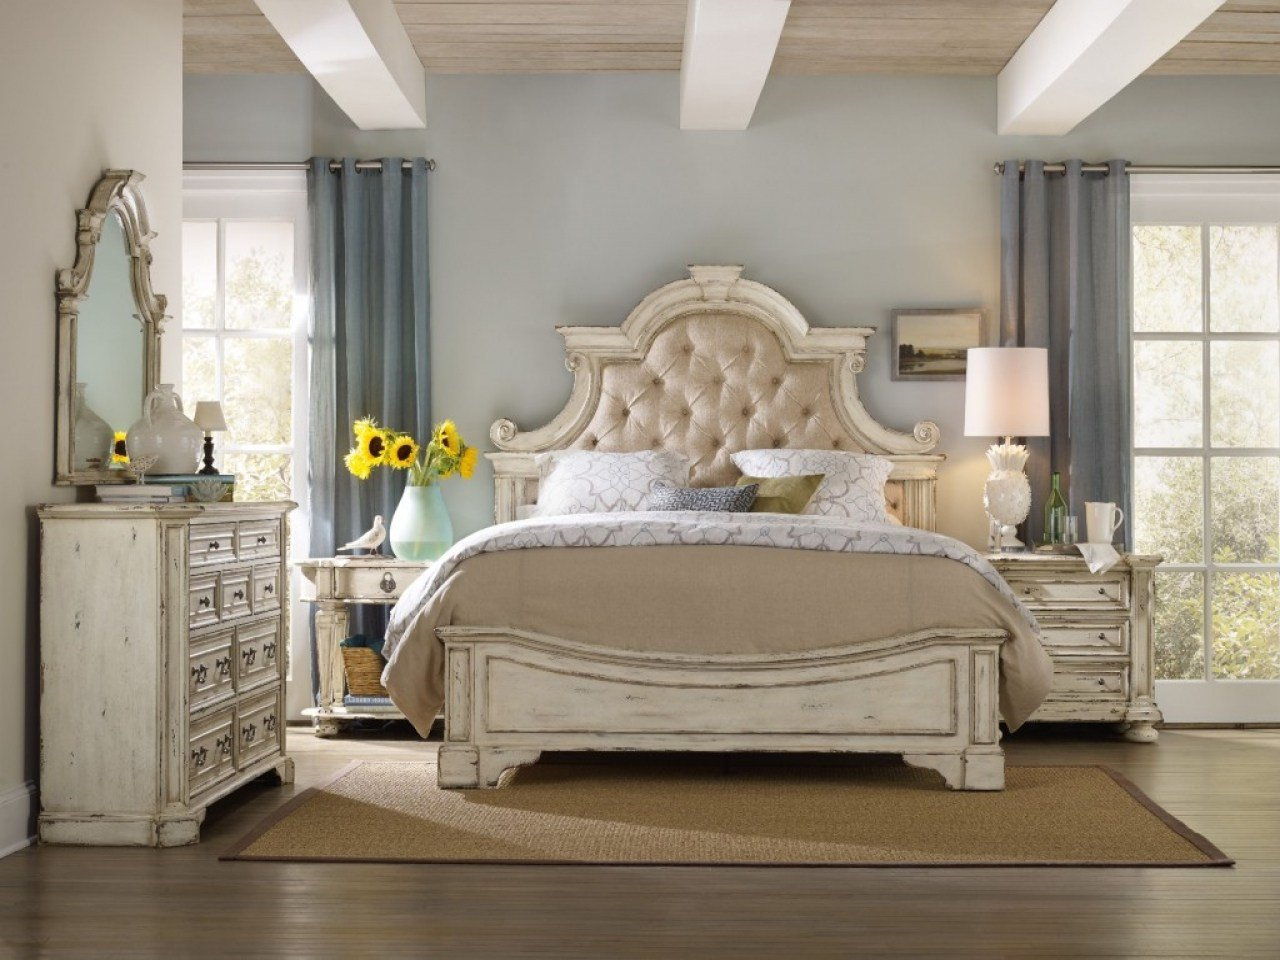 Best Farm Style Furniture Farmhouse Chic Bedroom Farm Style With Pictures